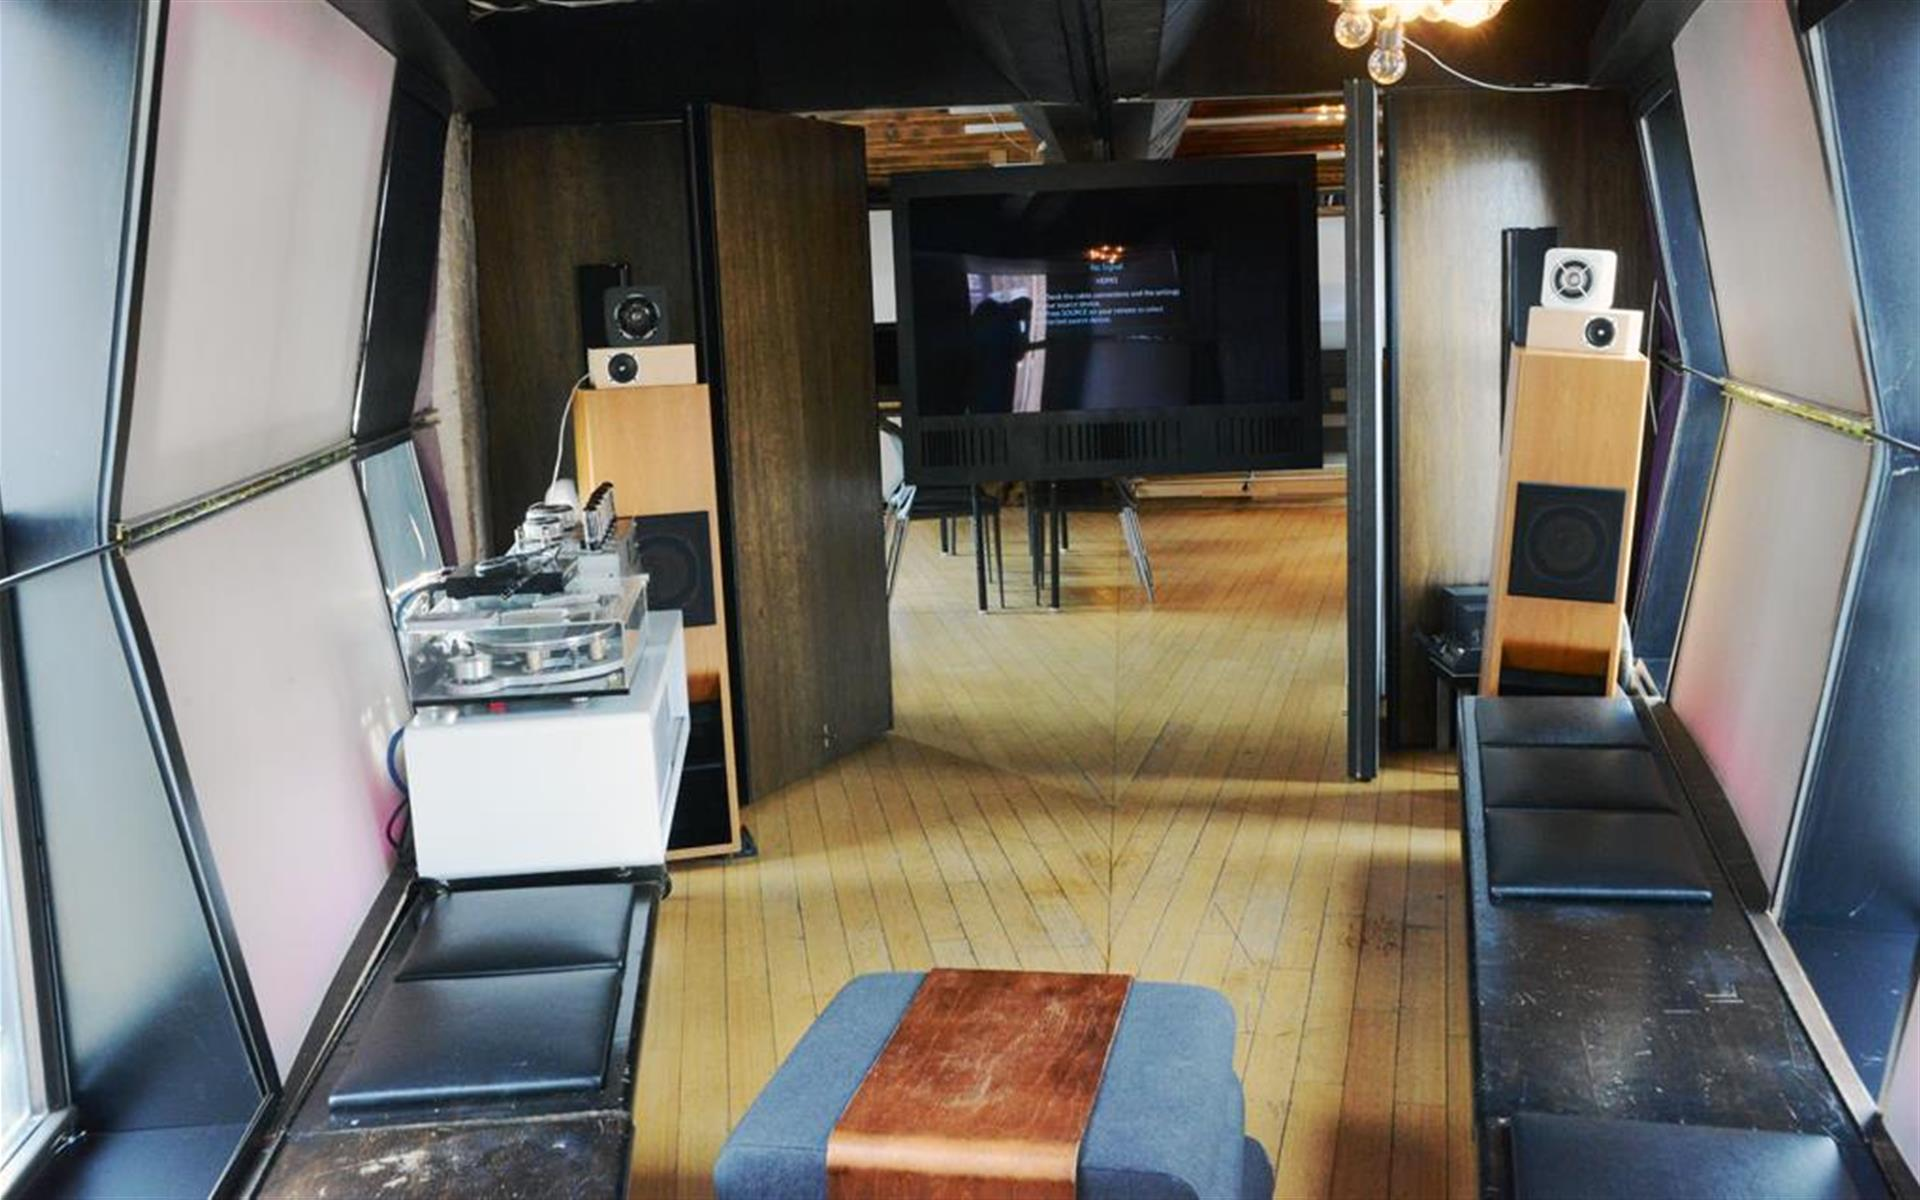 Flow Space - Meetings & Events - Meatpacking District - Private meeting room up to 5